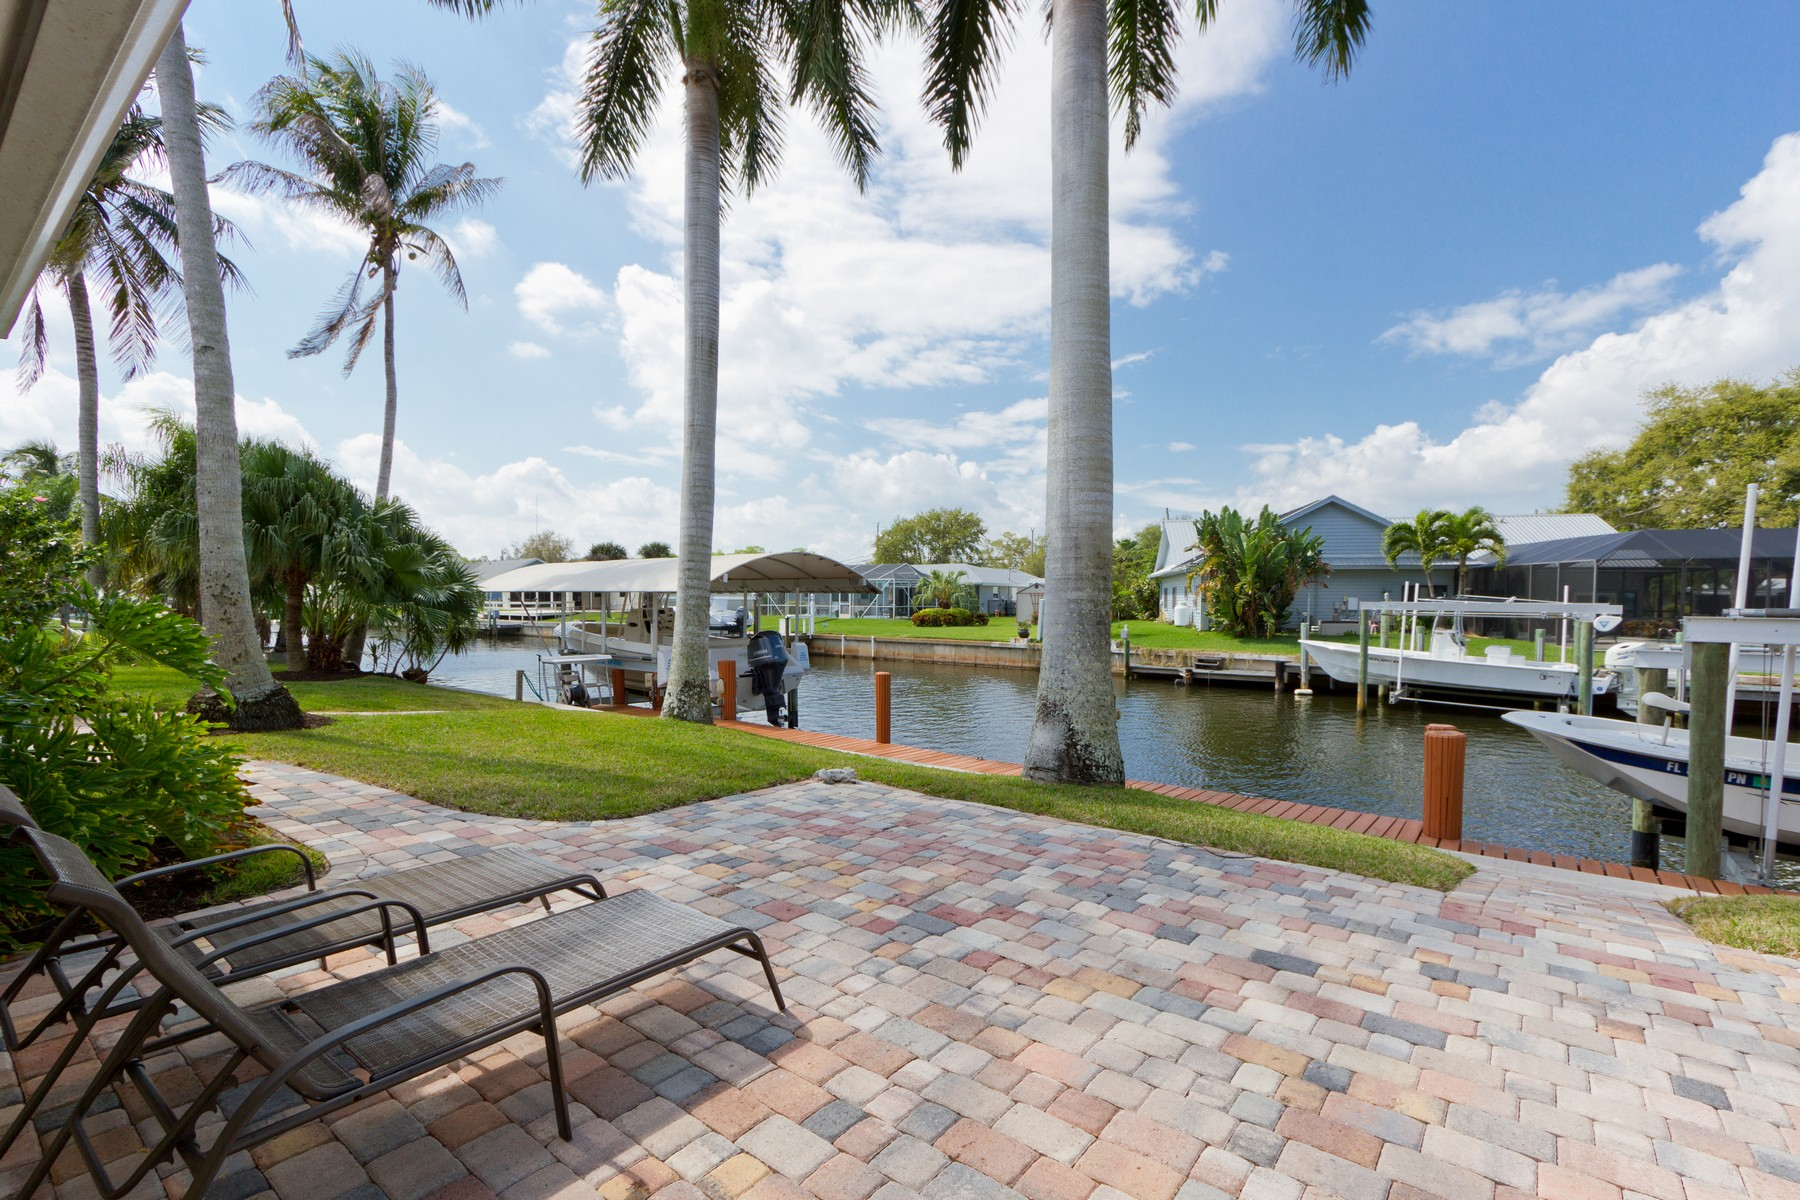 Additional photo for property listing at Completely Renovated Canalfront Home with Quick Access to Intracoastal! 2203 Sixth Avenue SE Vero Beach, Florida 32962 United States